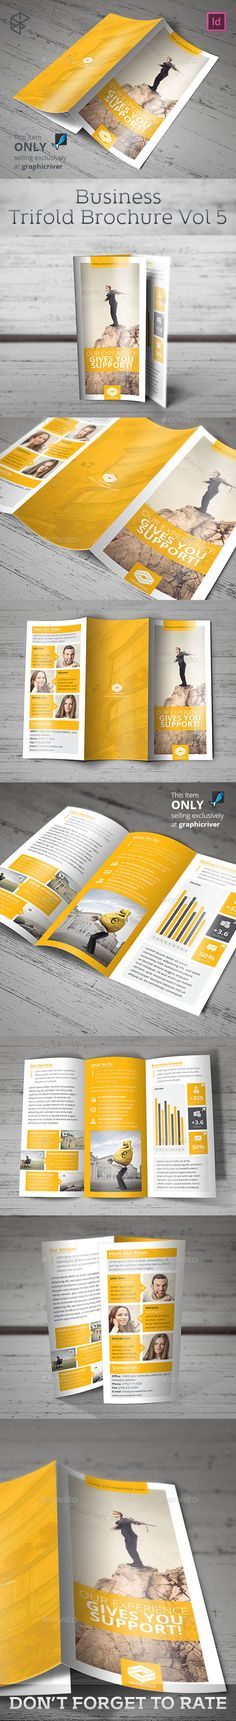 Business Trifold Brochure Template #design Download: http://graphicriver.net/item/business-trifold-brochure-vol-5/12646466?ref=ksioks